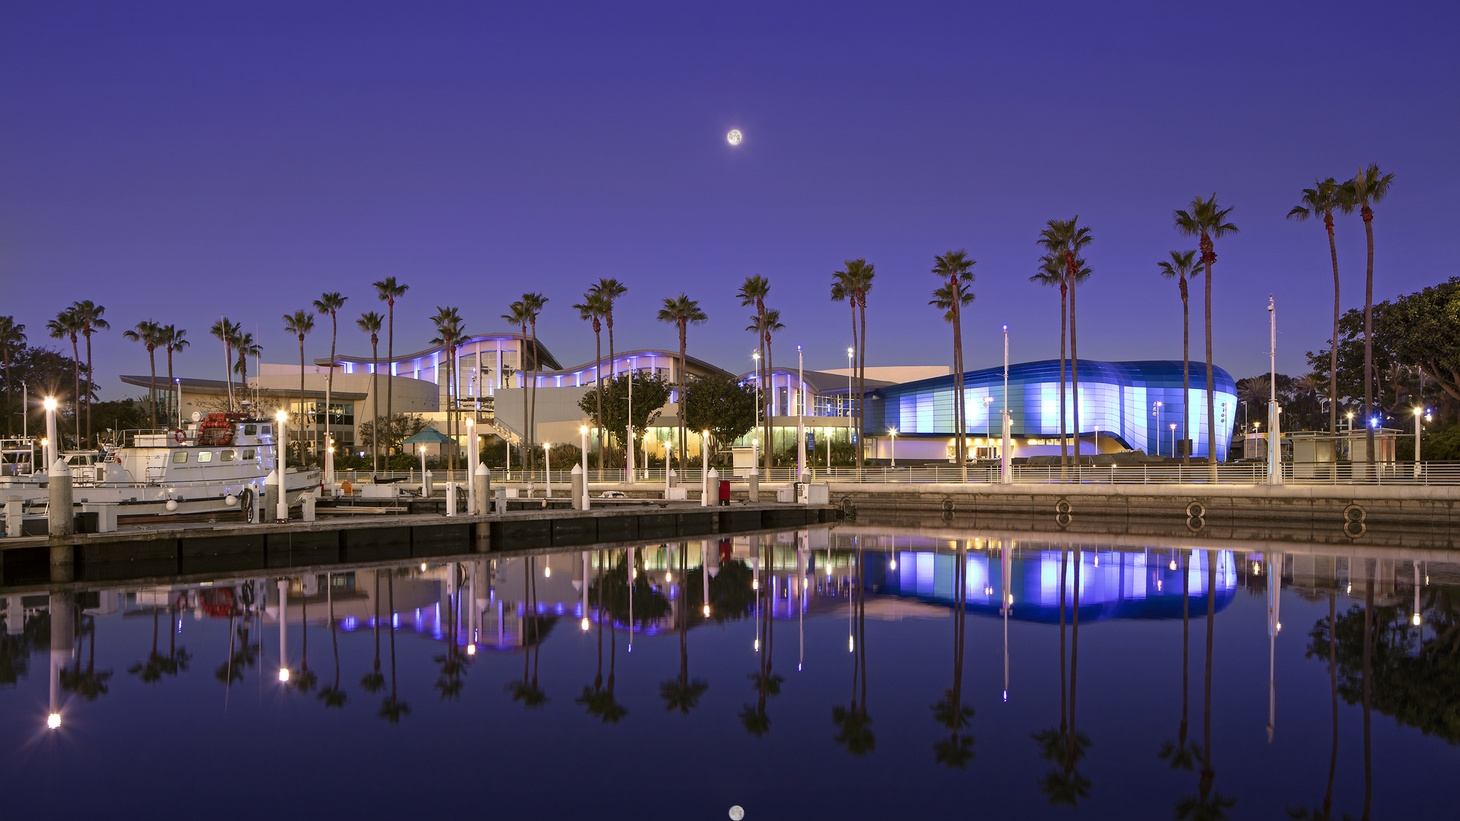 The Aquarium of the Pacific with its new Pacific Vision.